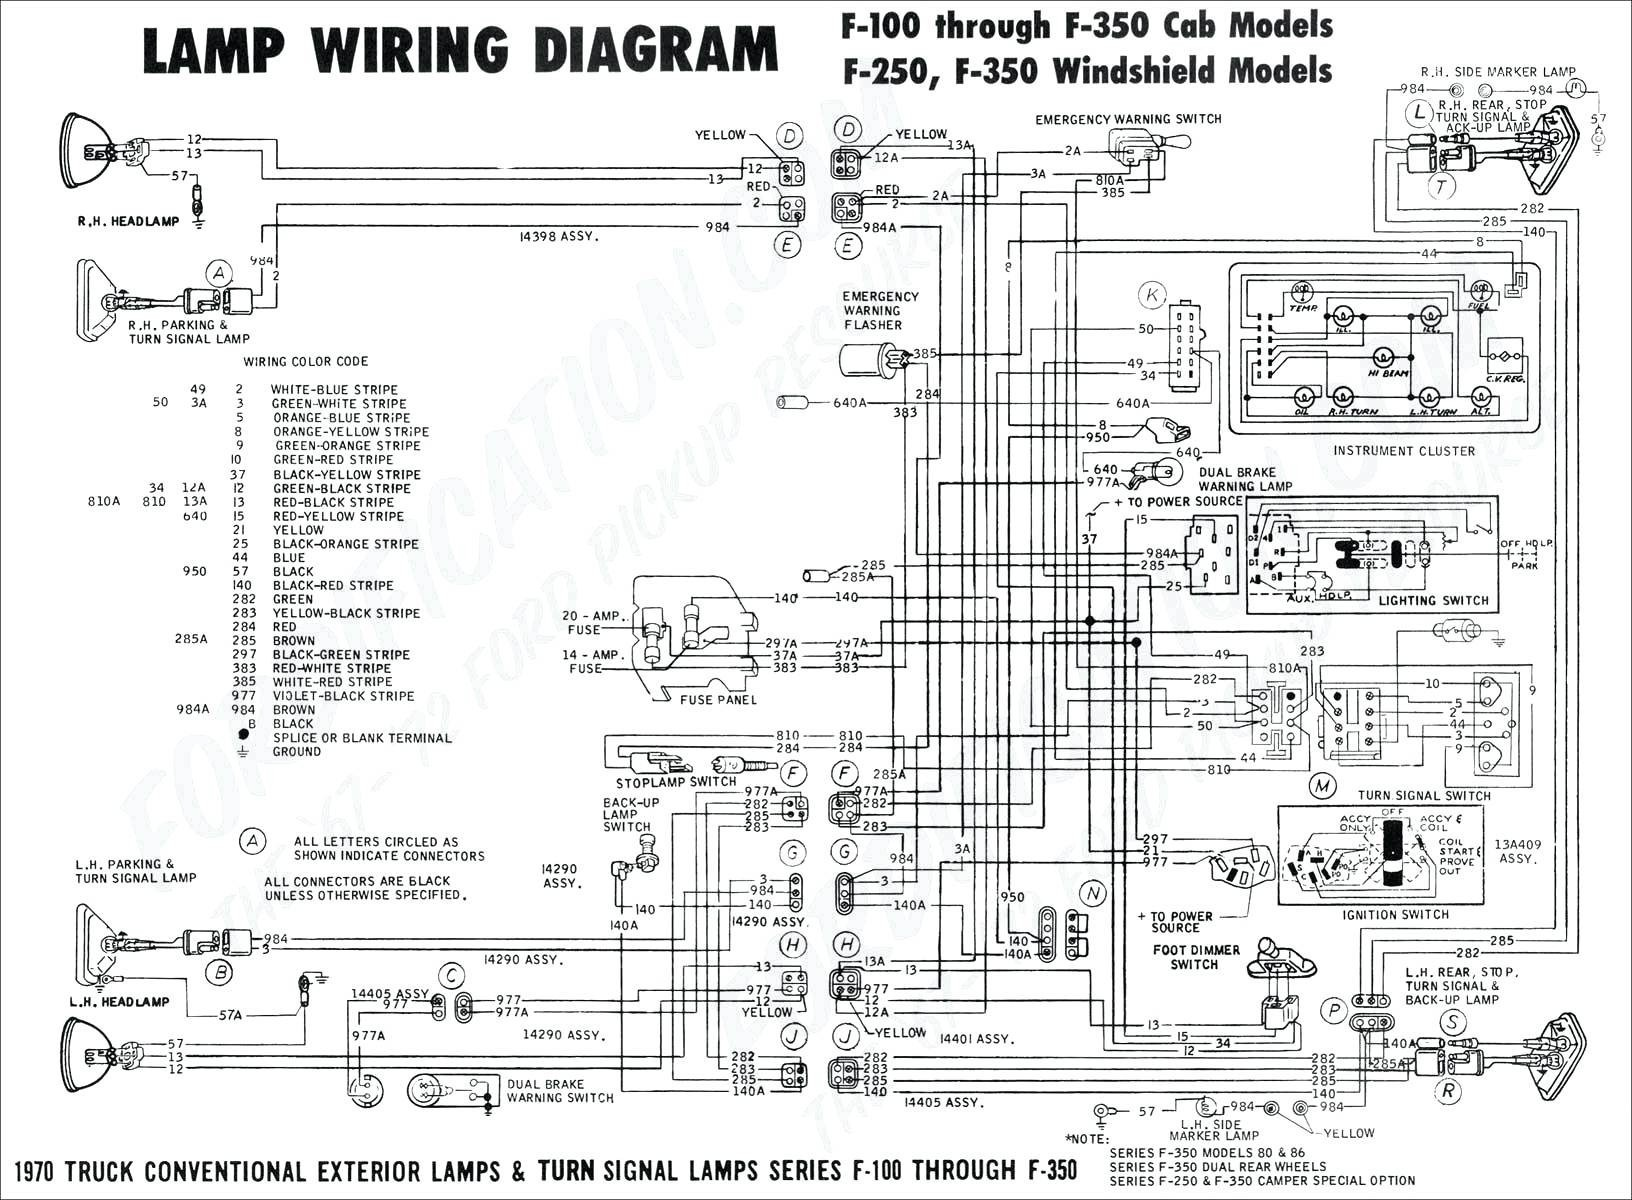 Electrical Engineering Block Diagram Hmsl Wiring Diagram Layout Wiring Diagrams • Of Electrical Engineering Block Diagram